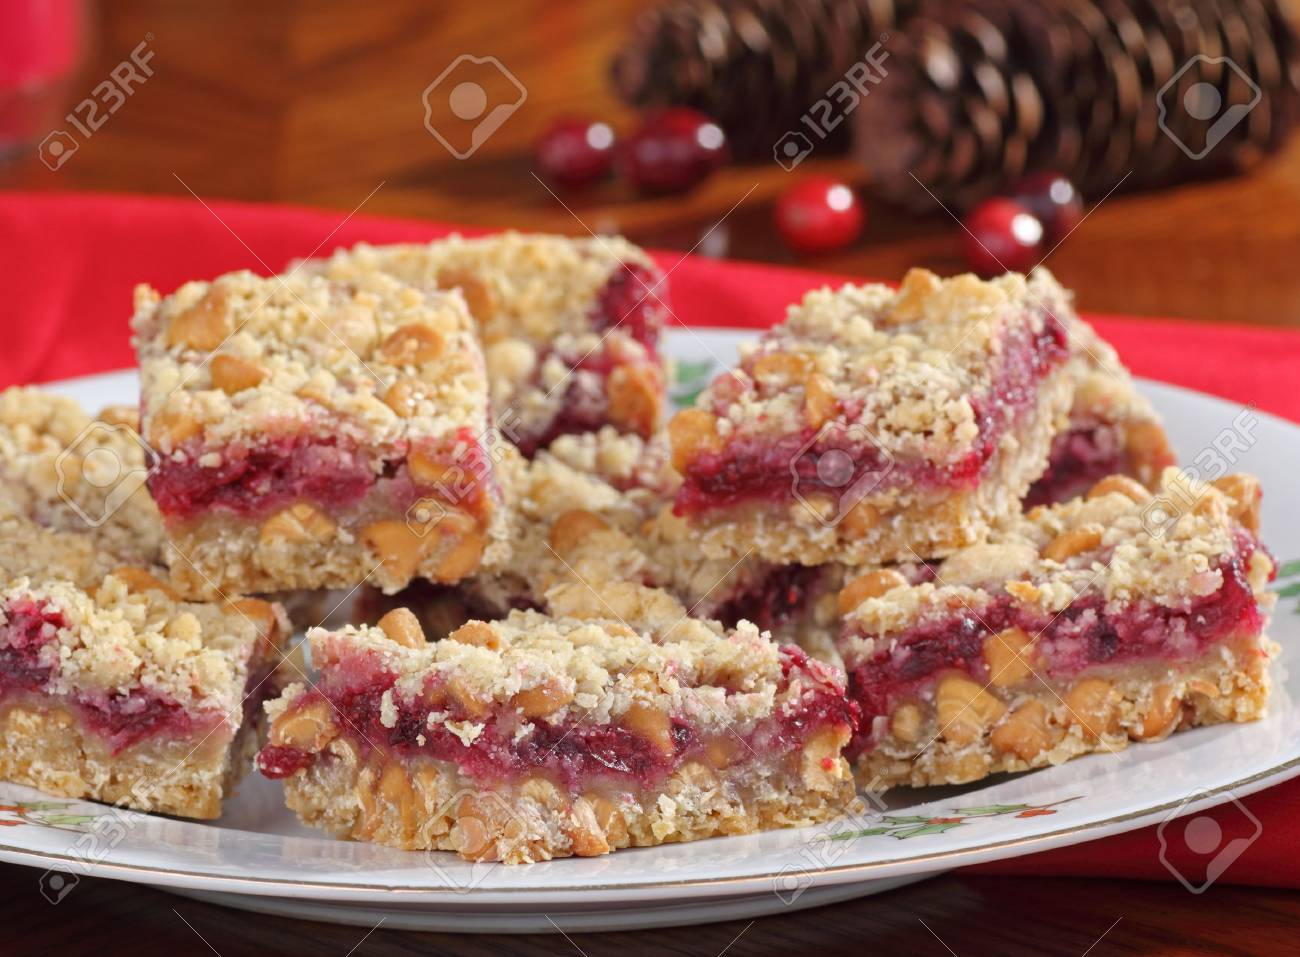 Closeup of a plate of cranberry and peanut butter chip bars Stock Photo - 16240857